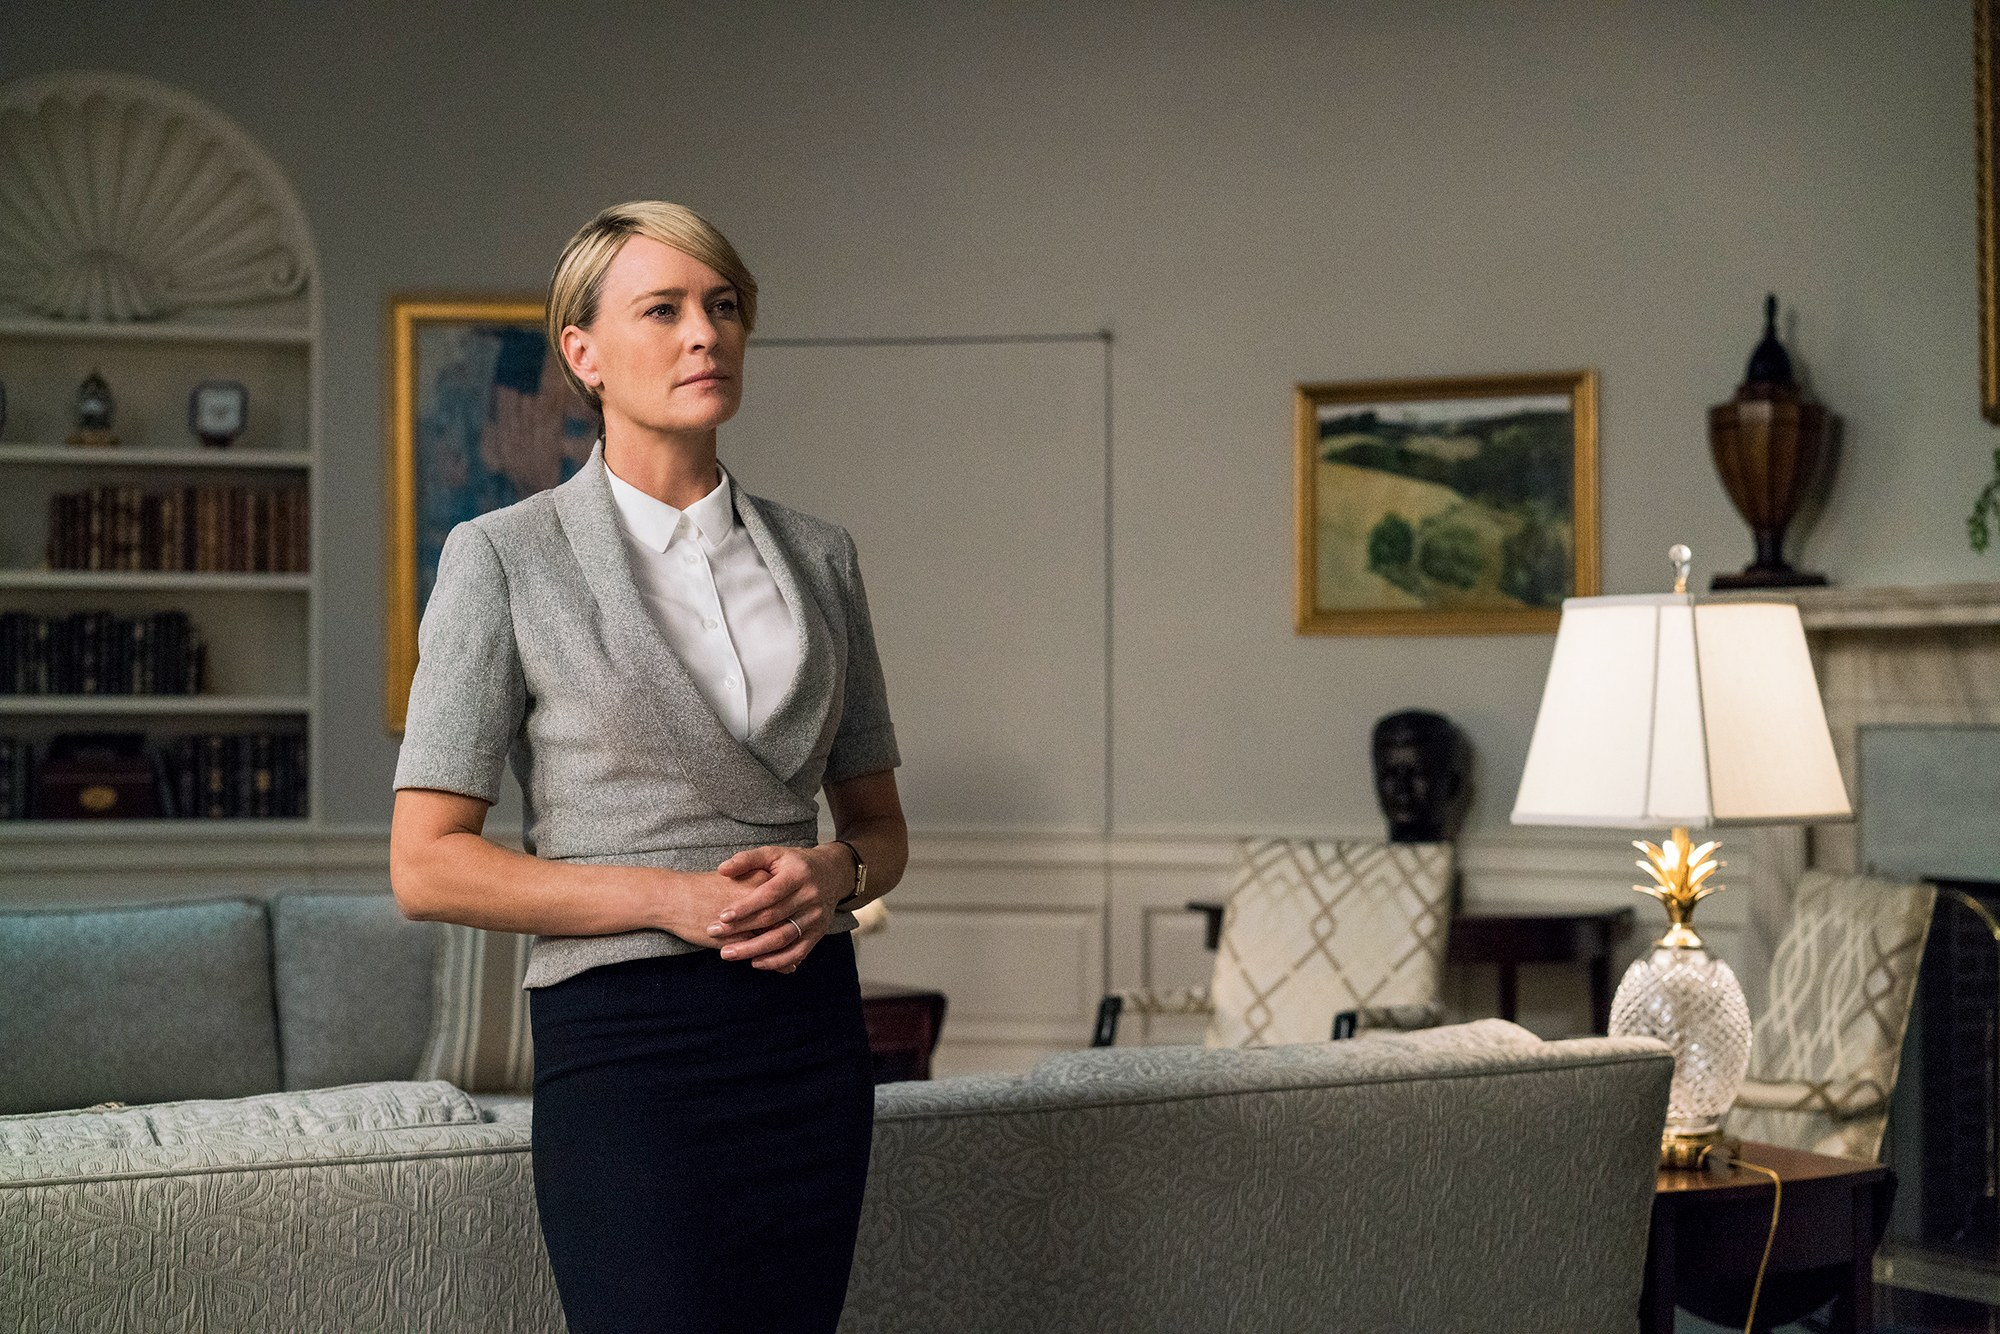 An image of Claire Underwood from House of Cards